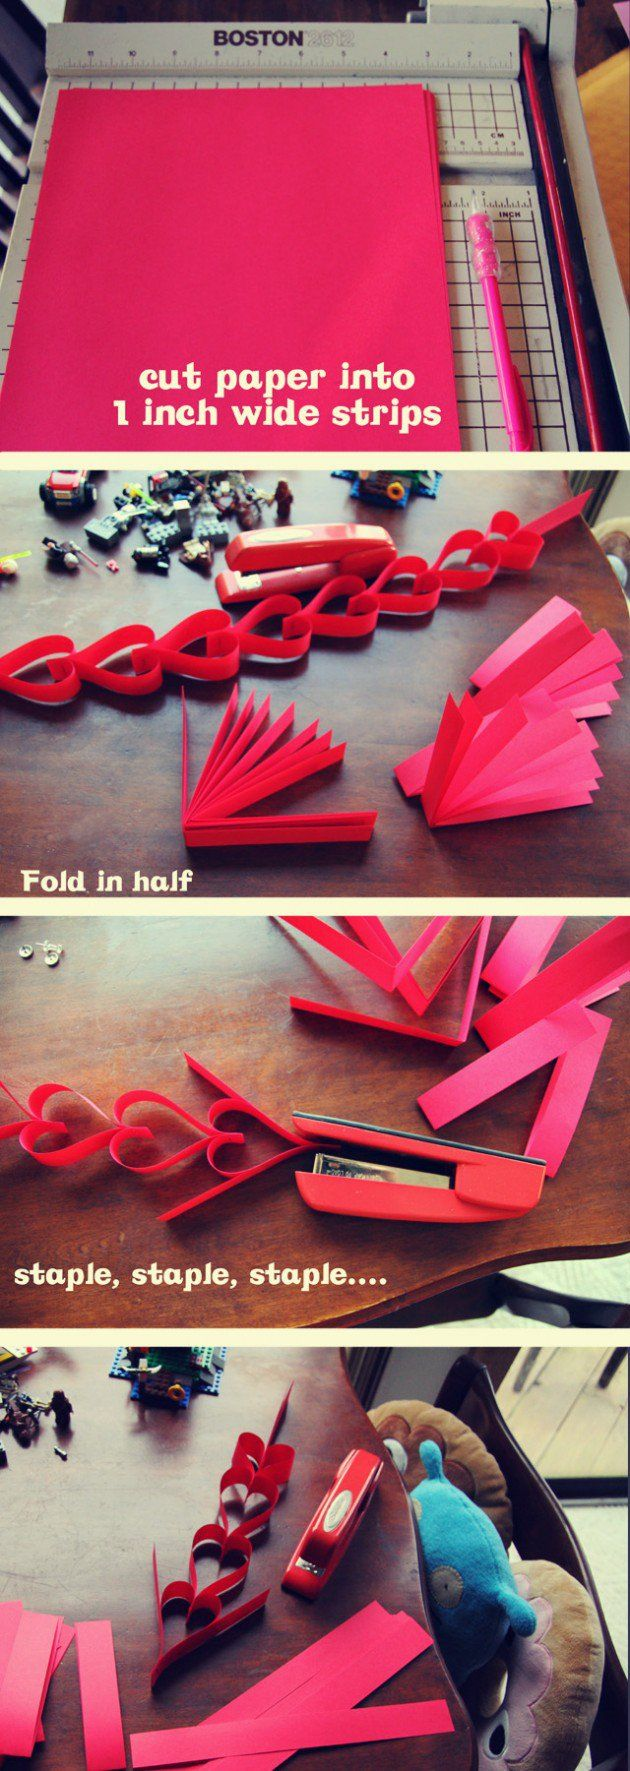 Office Valentine Ideas In Valentines Day Office Ideas The Greatest 30 Diy Decoration Ideas For Unforgettable Valentines Day Office Ideas Compensation Cafe Simple